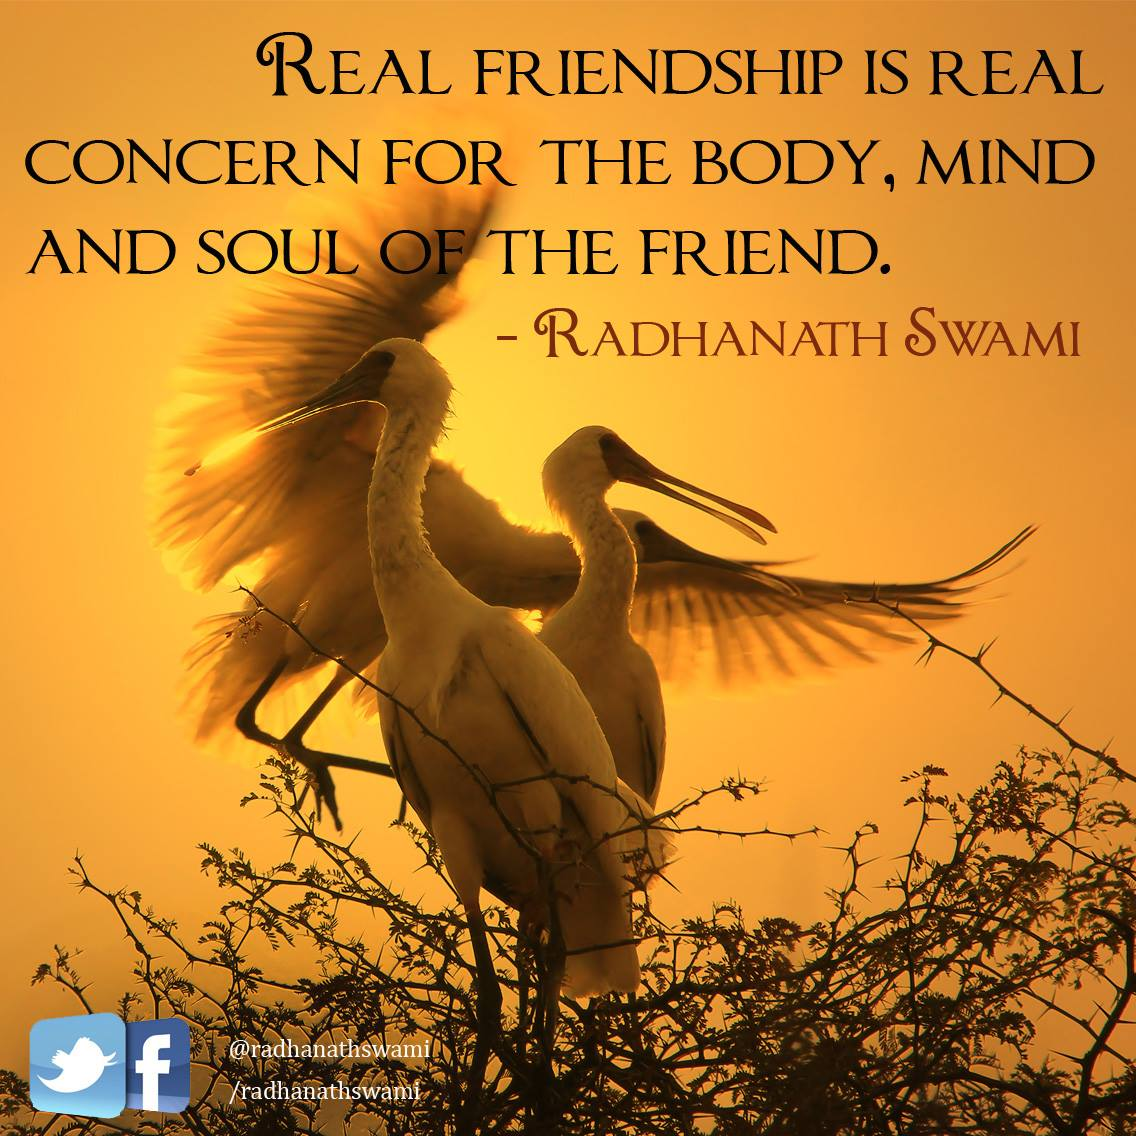 Quotes About Real Friendship Radhanath Swami Inspires  Radhanath Swami On Real Friendship